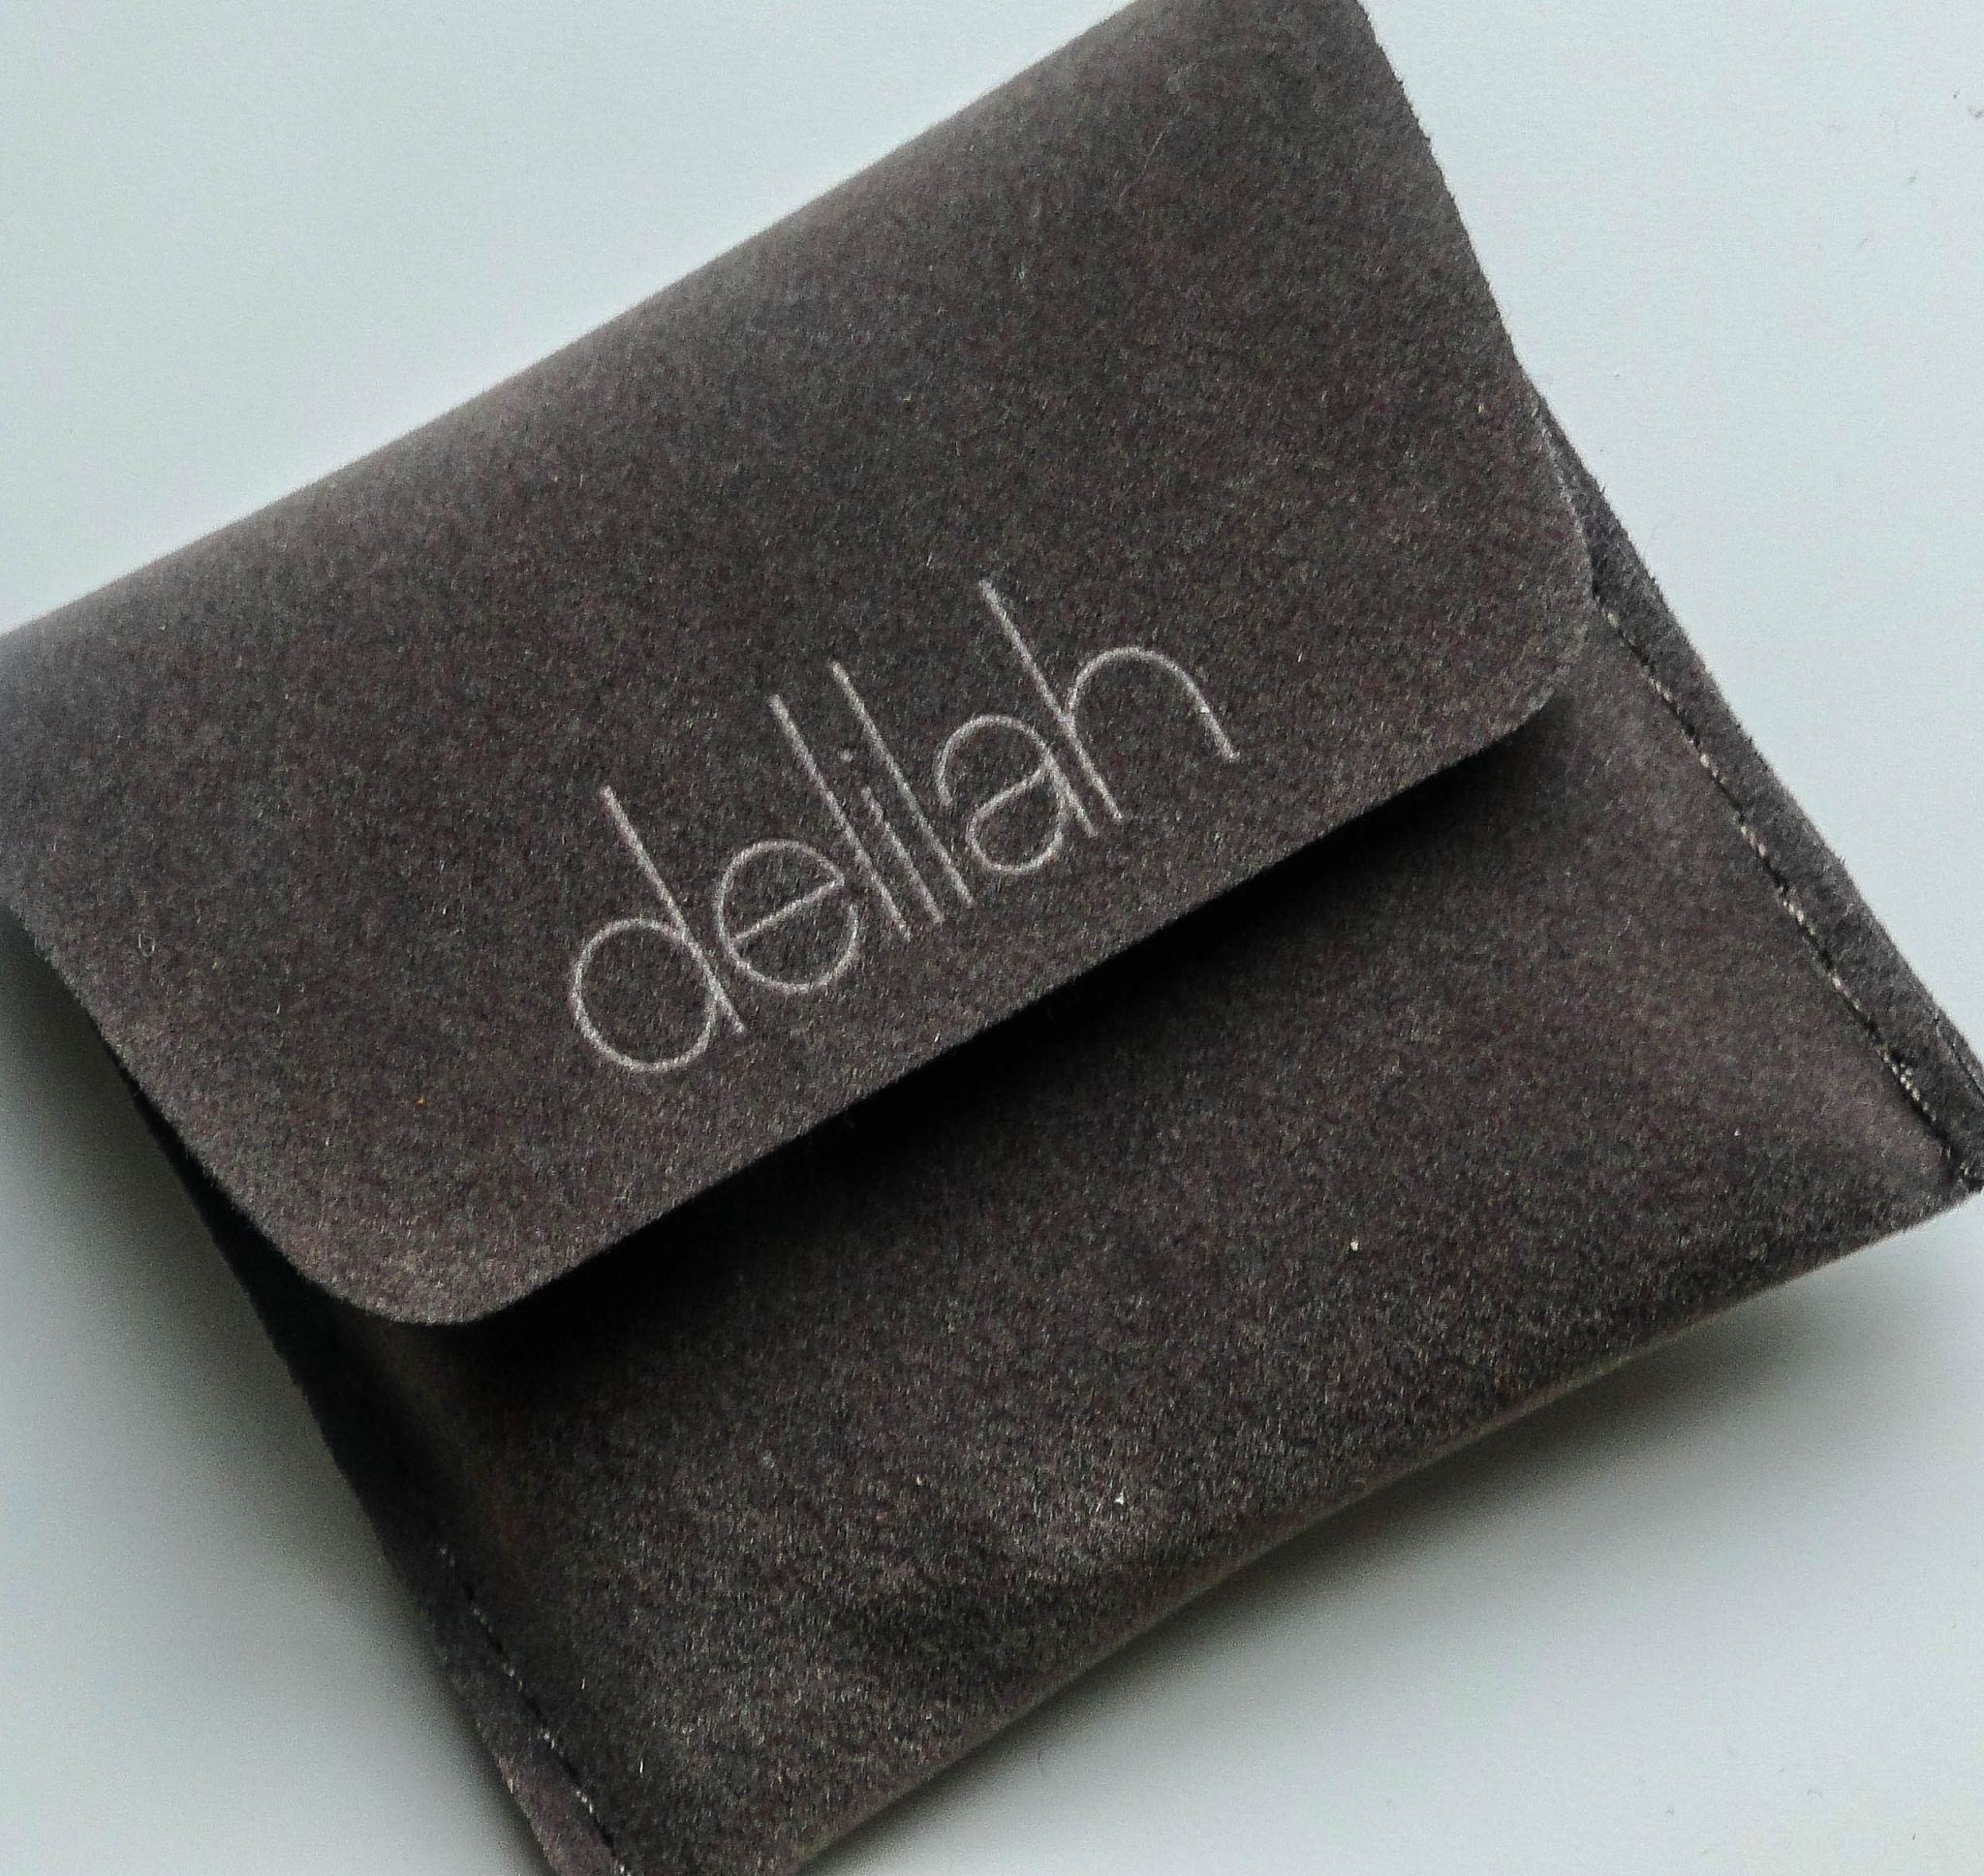 Delilah Cosmetics Blush - Lullaby